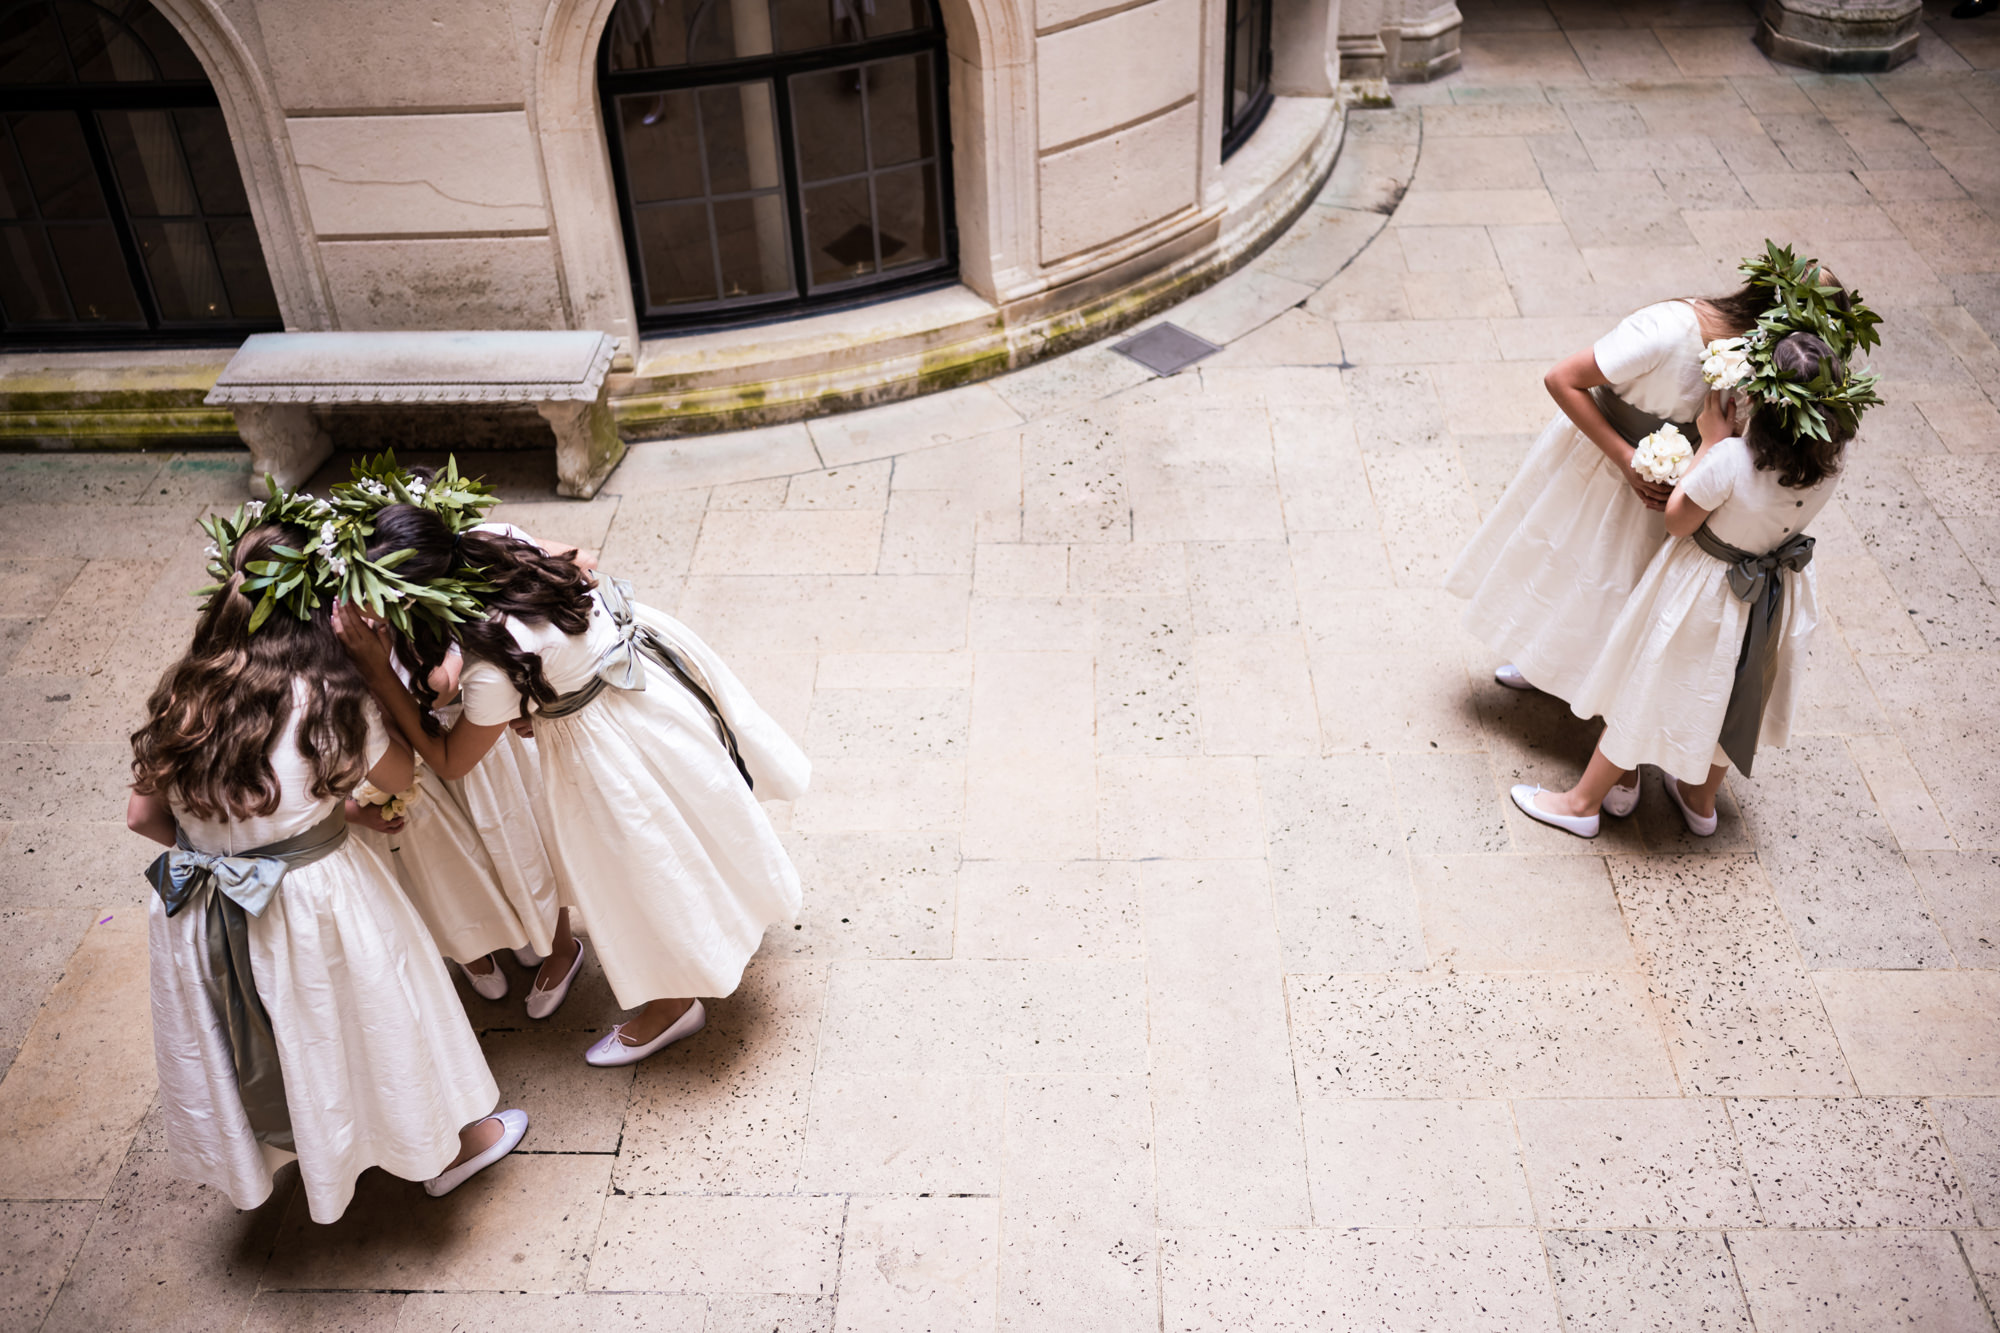 Flower girls whispering in courtyard photo by Cliff Mautner